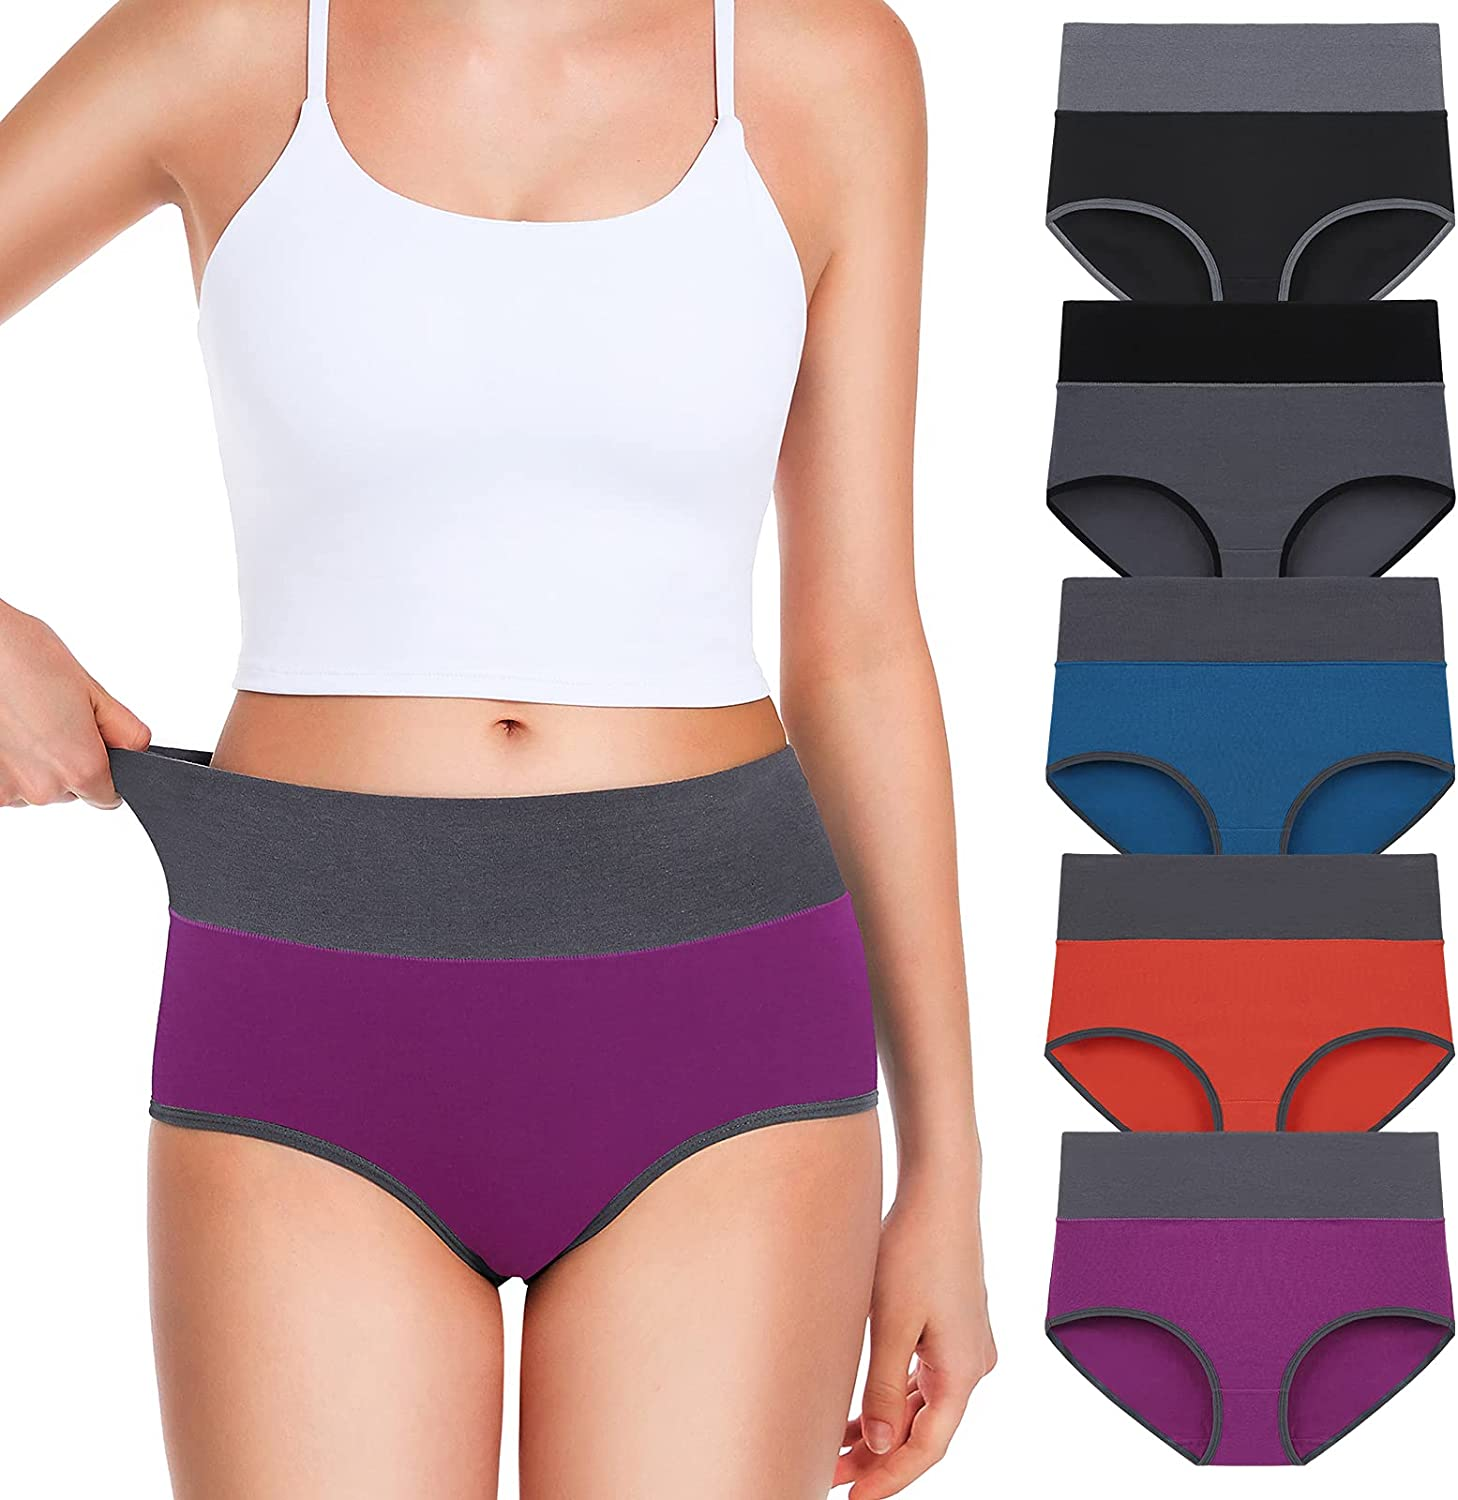 OLIKEME Womens Underwear High Waisted Cotton Full Coverage Breathable Ladies Briefs